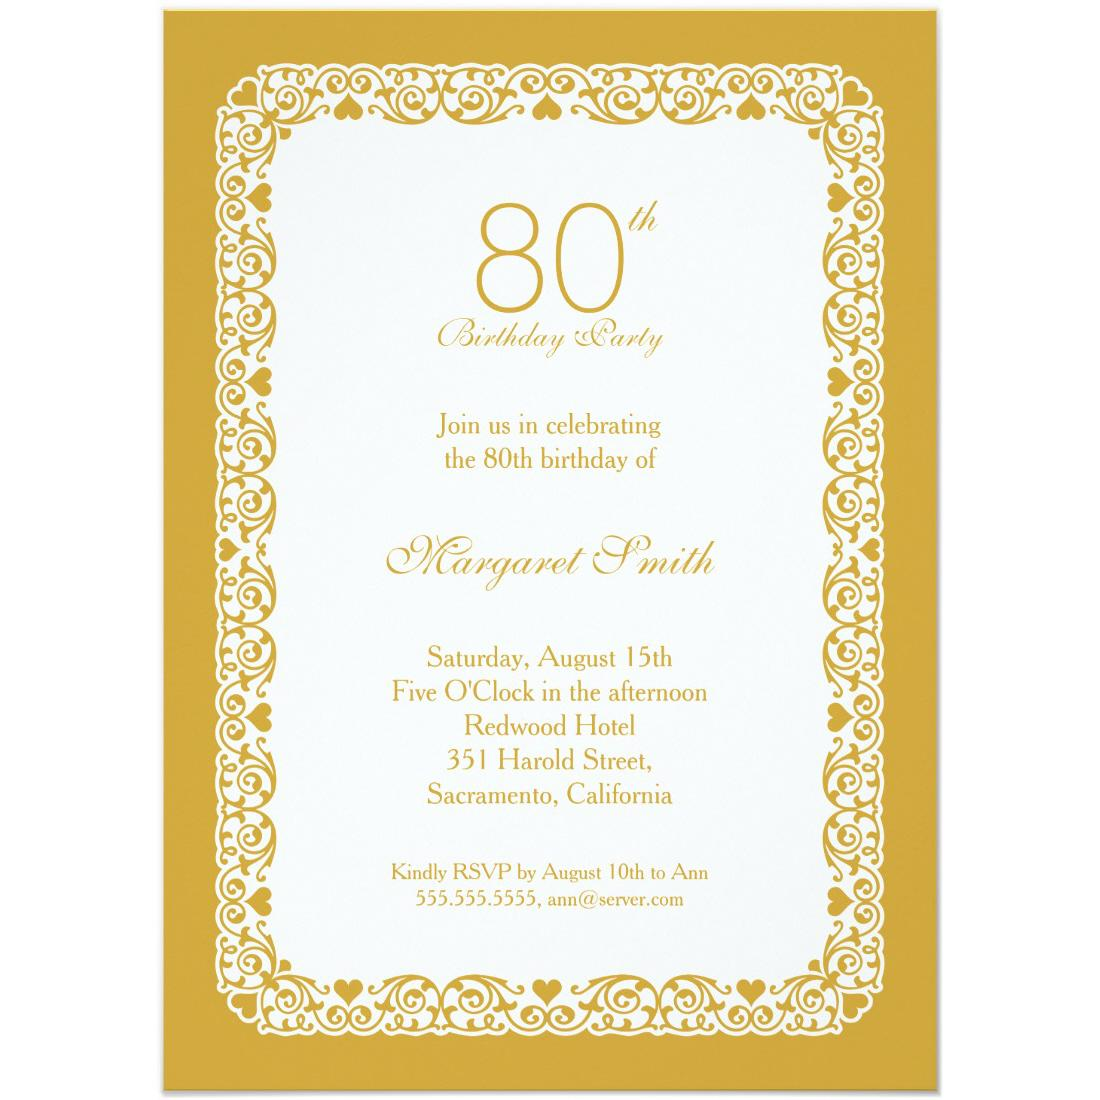 Elegant 80th Birthday Party Invitations Lace For Own Custom Party Birthday Invitations